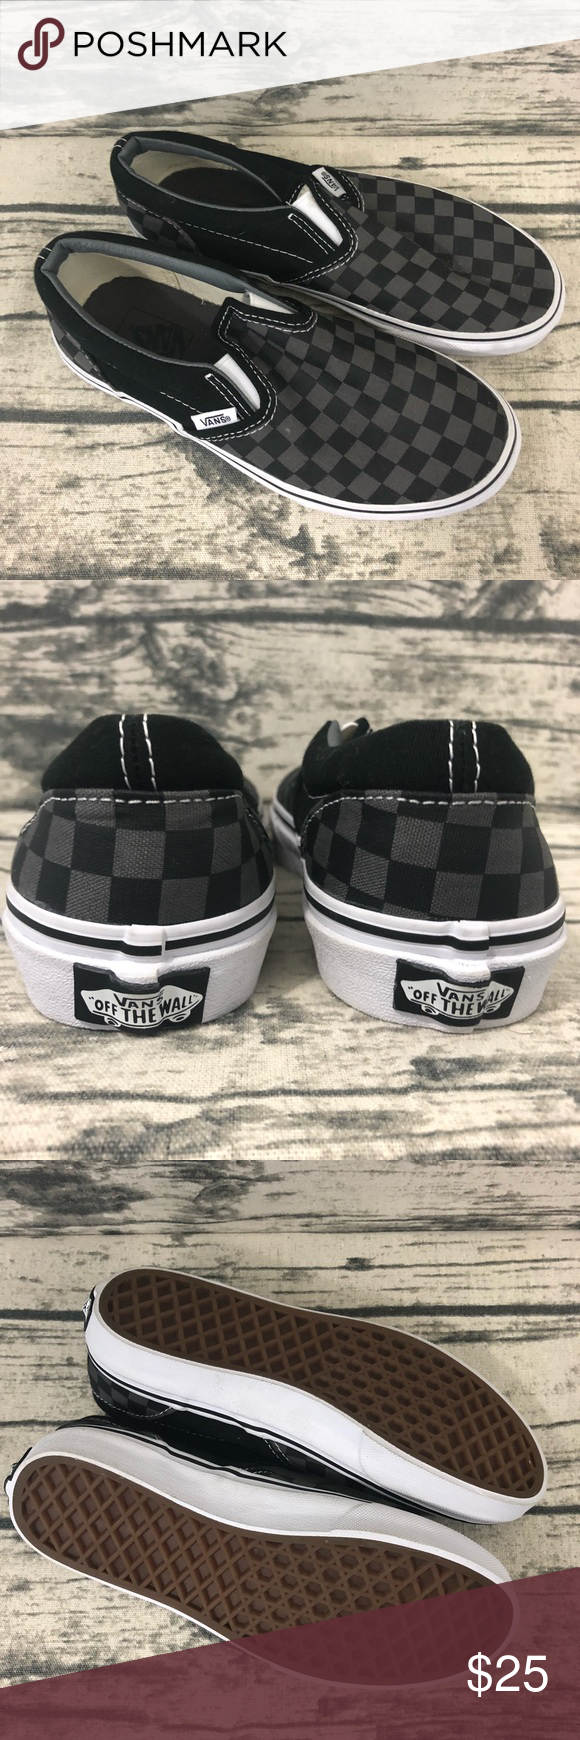 63a08c6ed21 Vans Youth Black   Gray Checkered Slip On Shoes 3 ▫️Please see photos for  item details. ▫️All items are pre-loved unless otherwise noted.